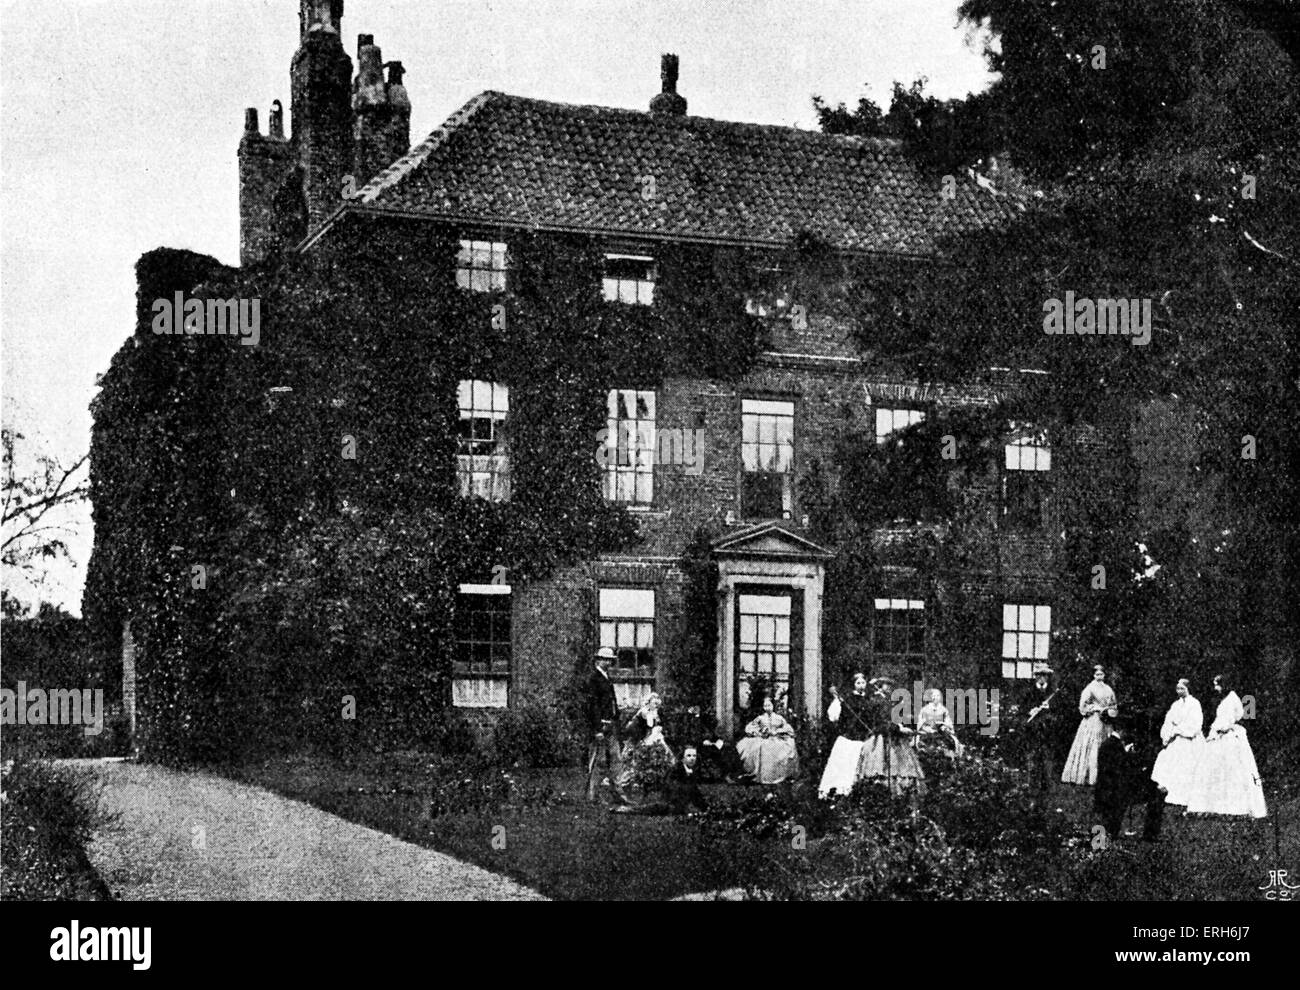 Croft Rectory - Lewis Carroll 's childhood home from 1843, when his father became Anglican parish minister of - Stock Image